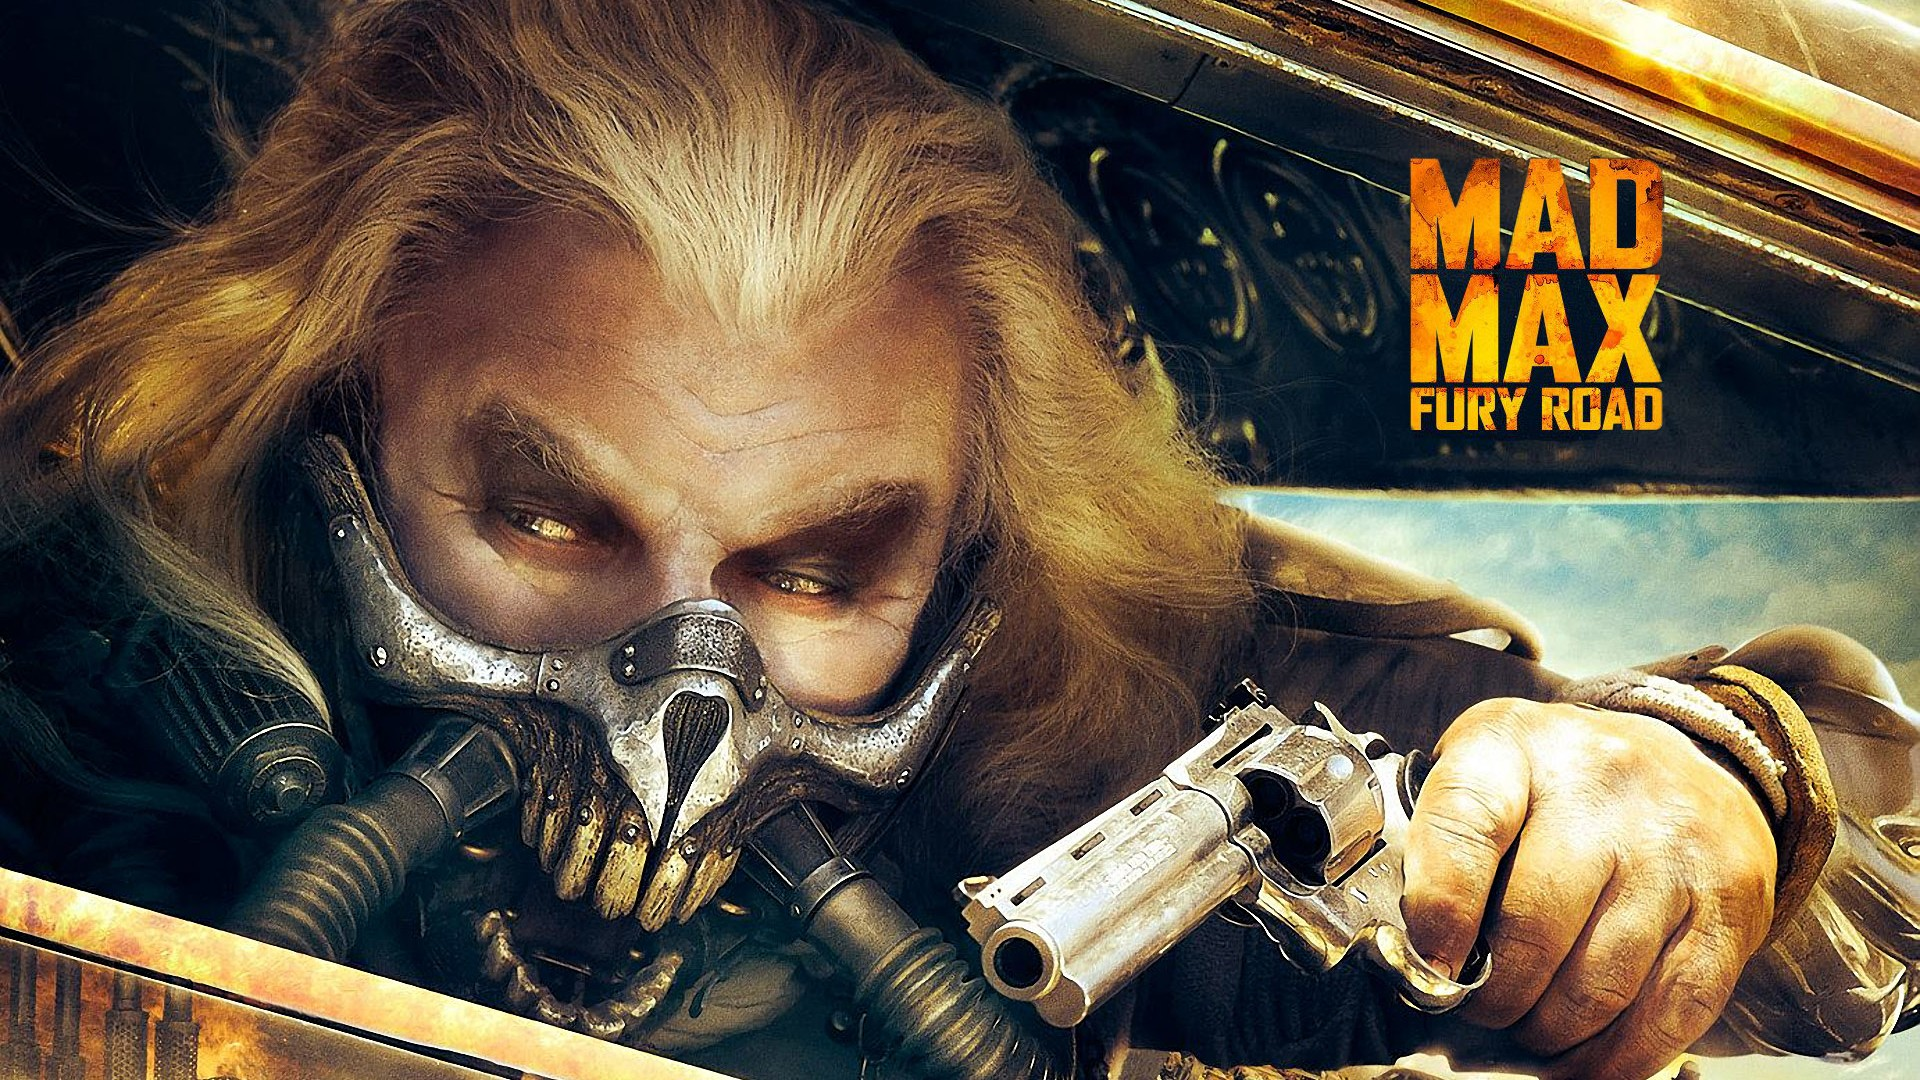 Final, sorry, Mad max fury road movie opinion